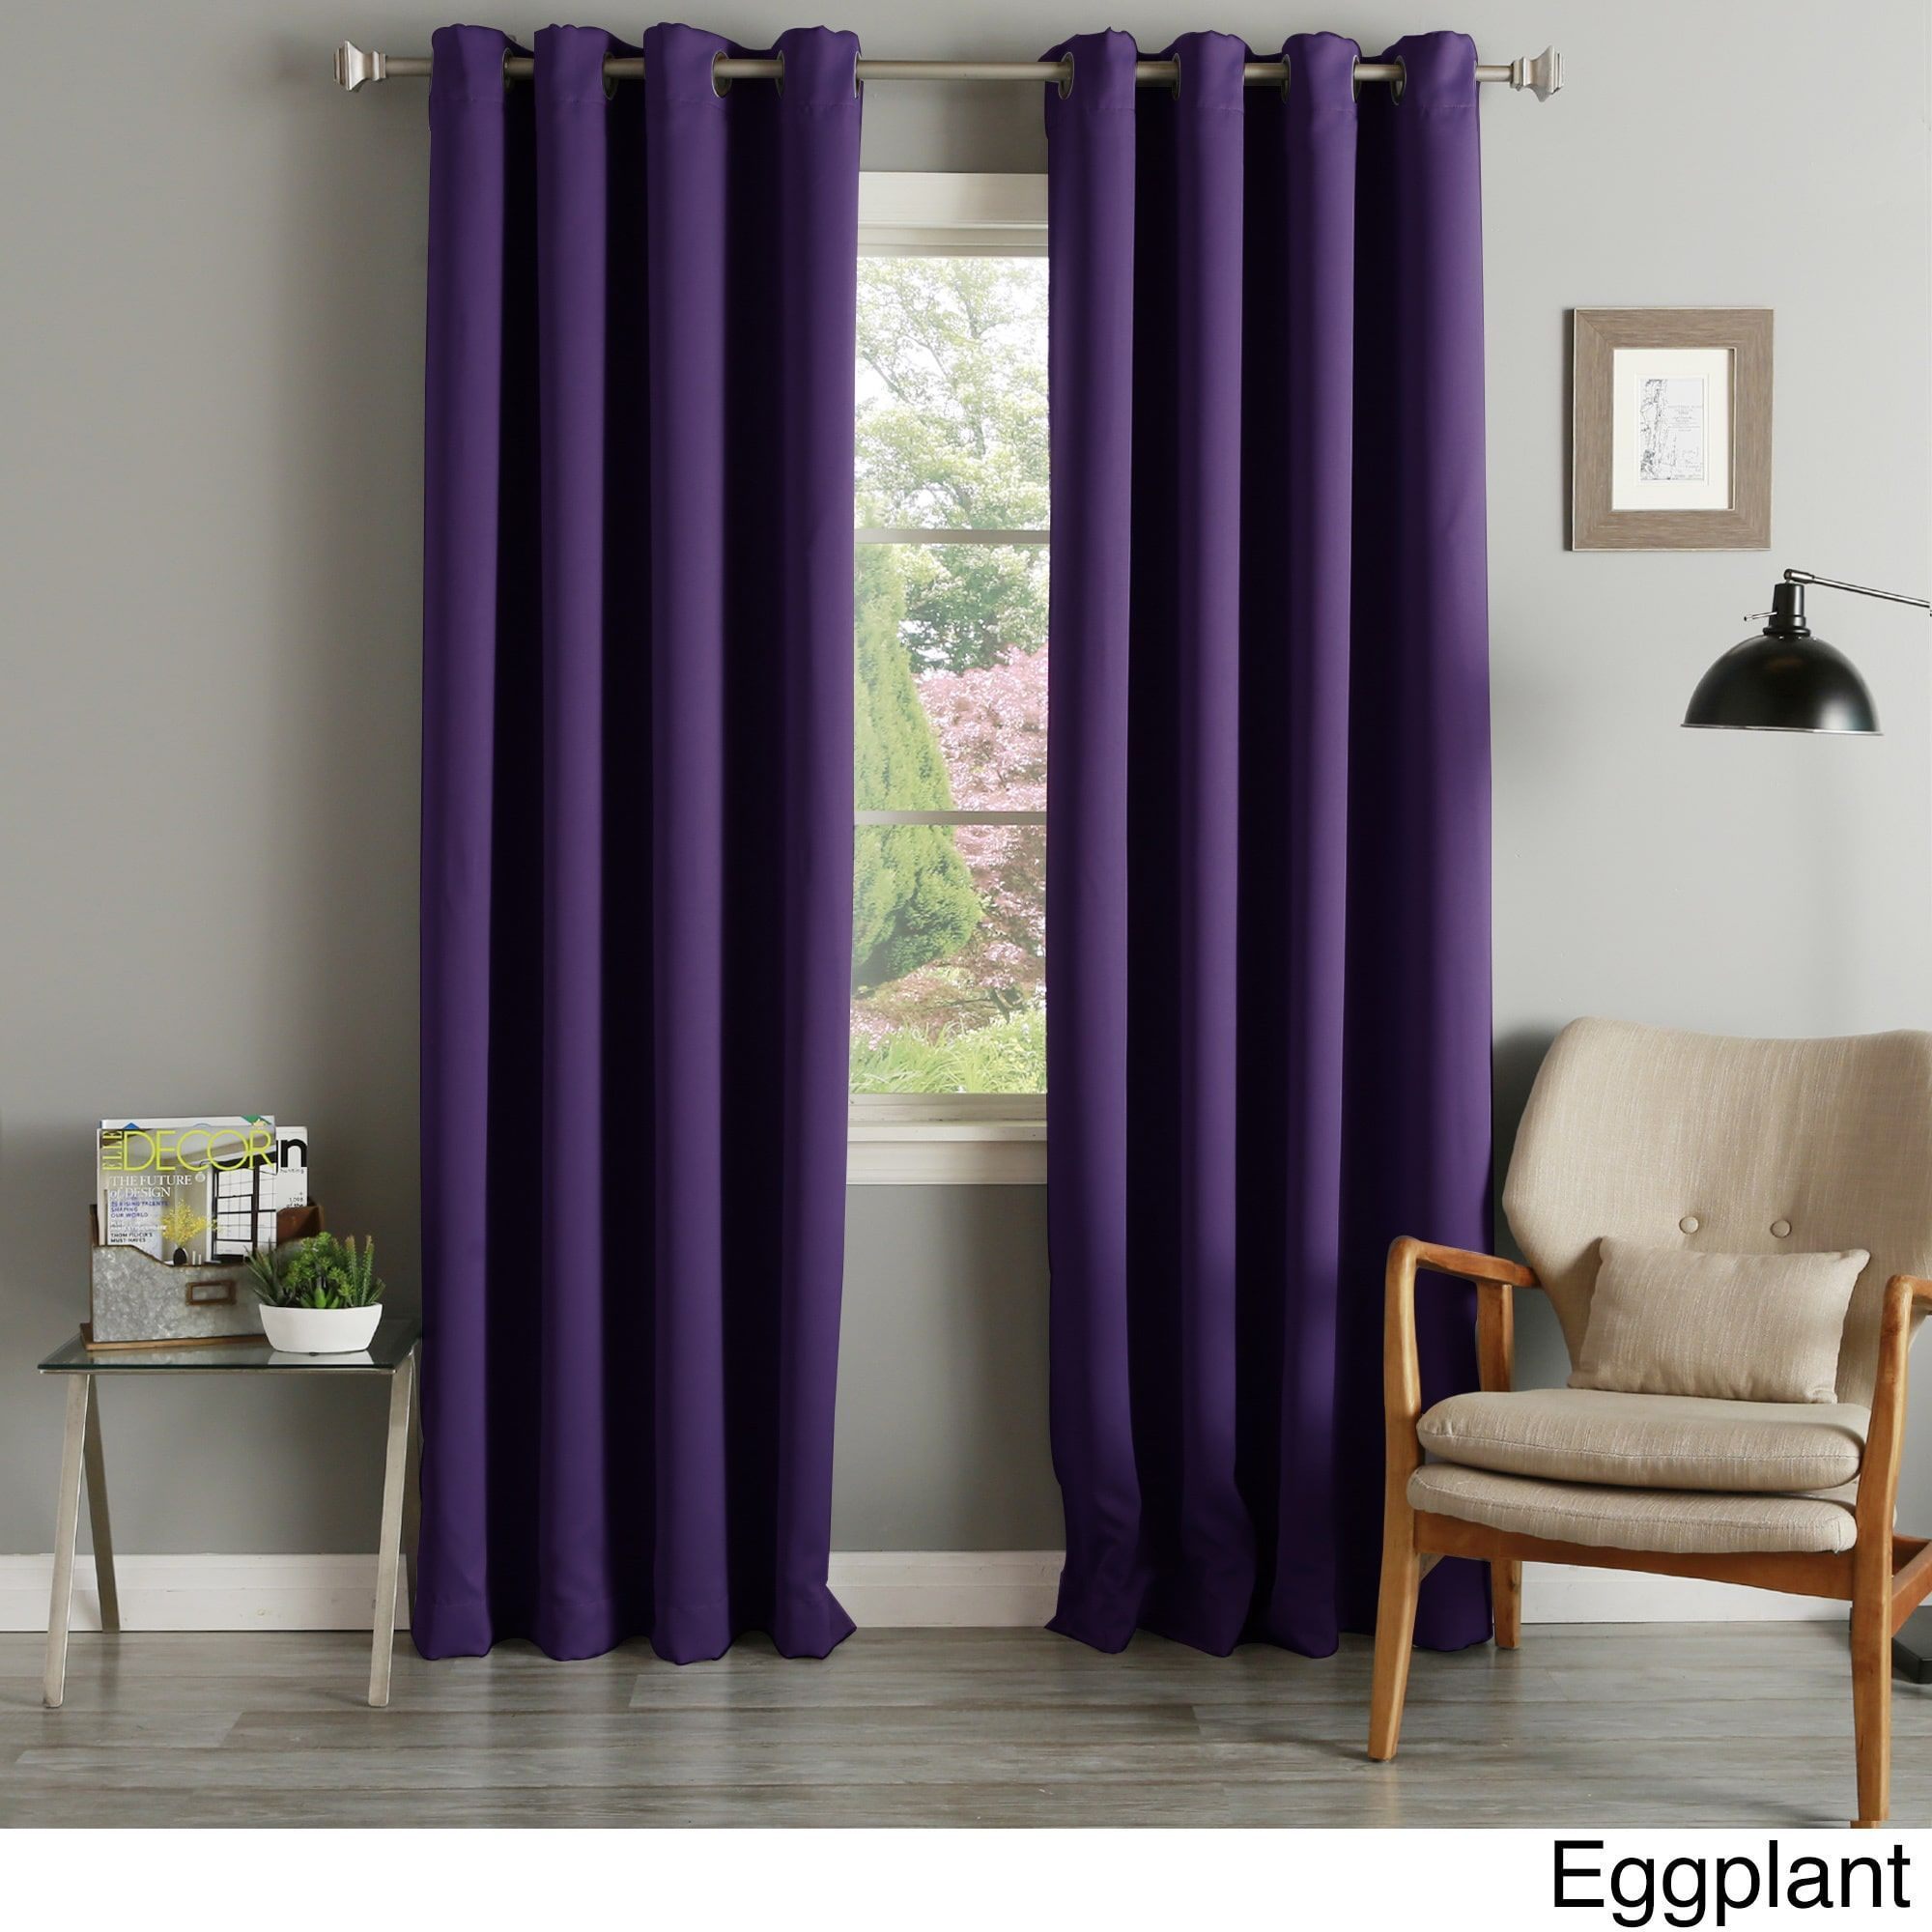 Aurora Home Grommet Top Thermal Insulated 96 Inch Blackout With Regard To Grommet Top Thermal Insulated Blackout Curtain Panel Pairs (View 12 of 20)